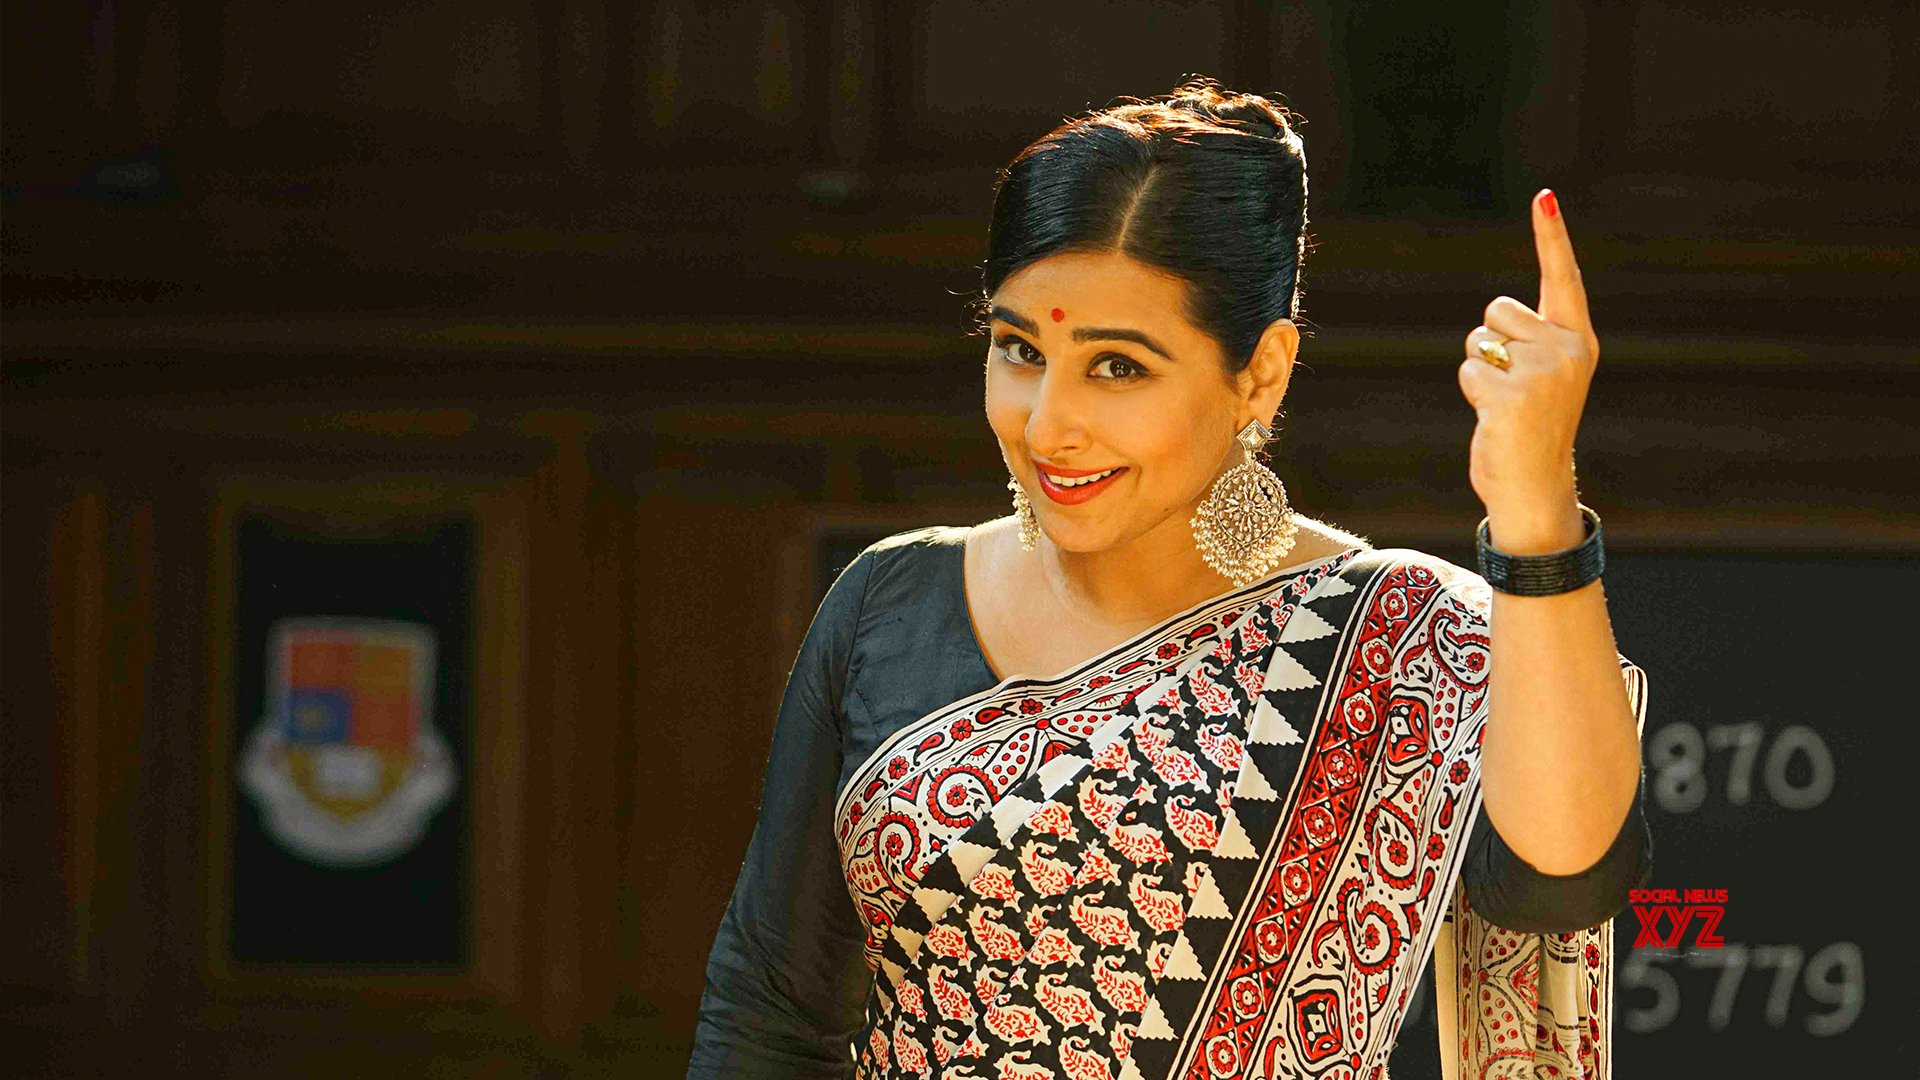 Vidya Balan's Shakuntala Devi movie is now streaming on Amazon Prime Video